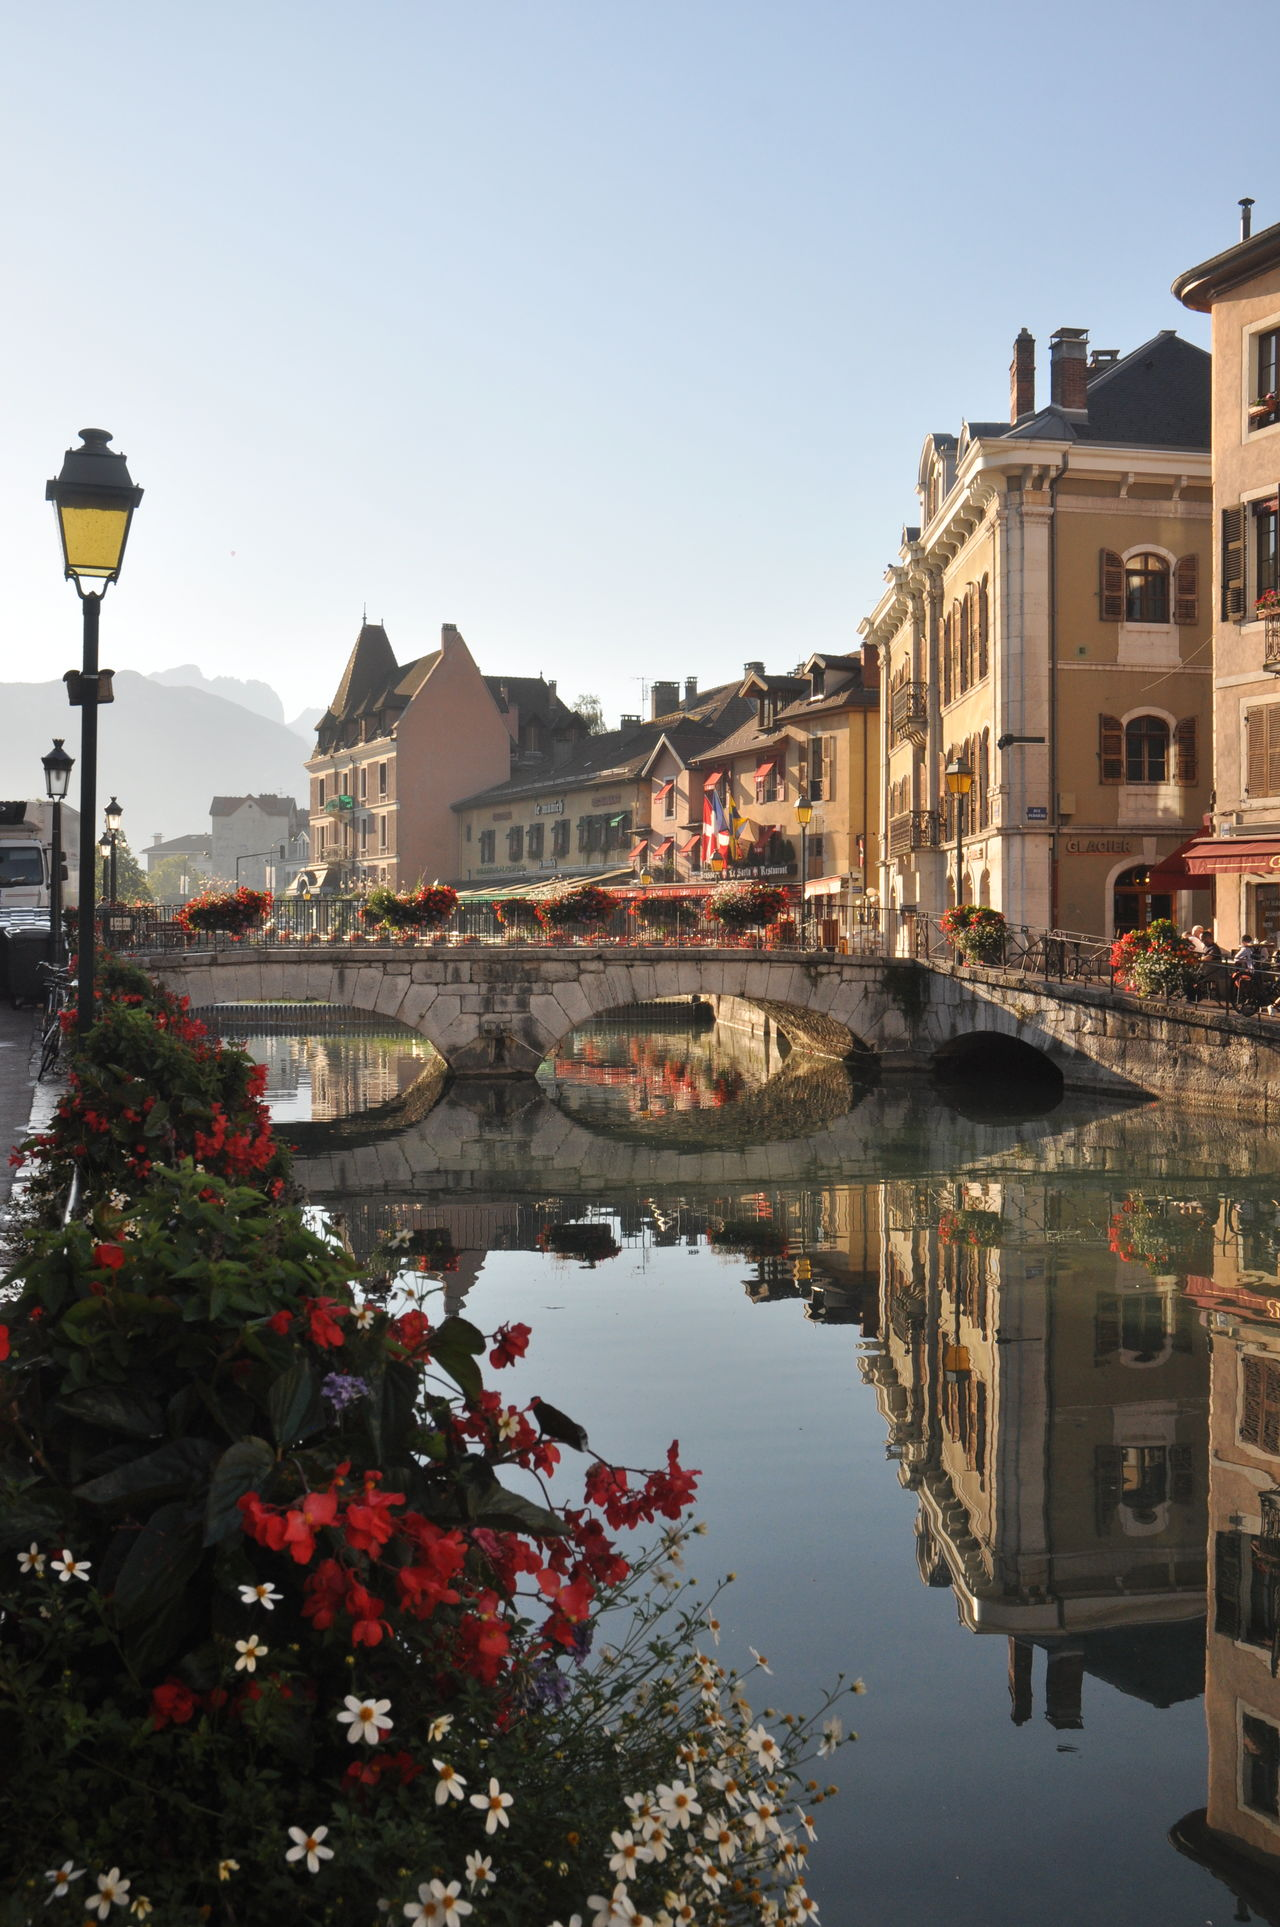 Architecture Bridge - Man Made Structure City Day Illuminated Landscape Nature No People Outdoors Reflection Scenics Sky Tourism Tradition Travel Travel Destinations Vacations Water